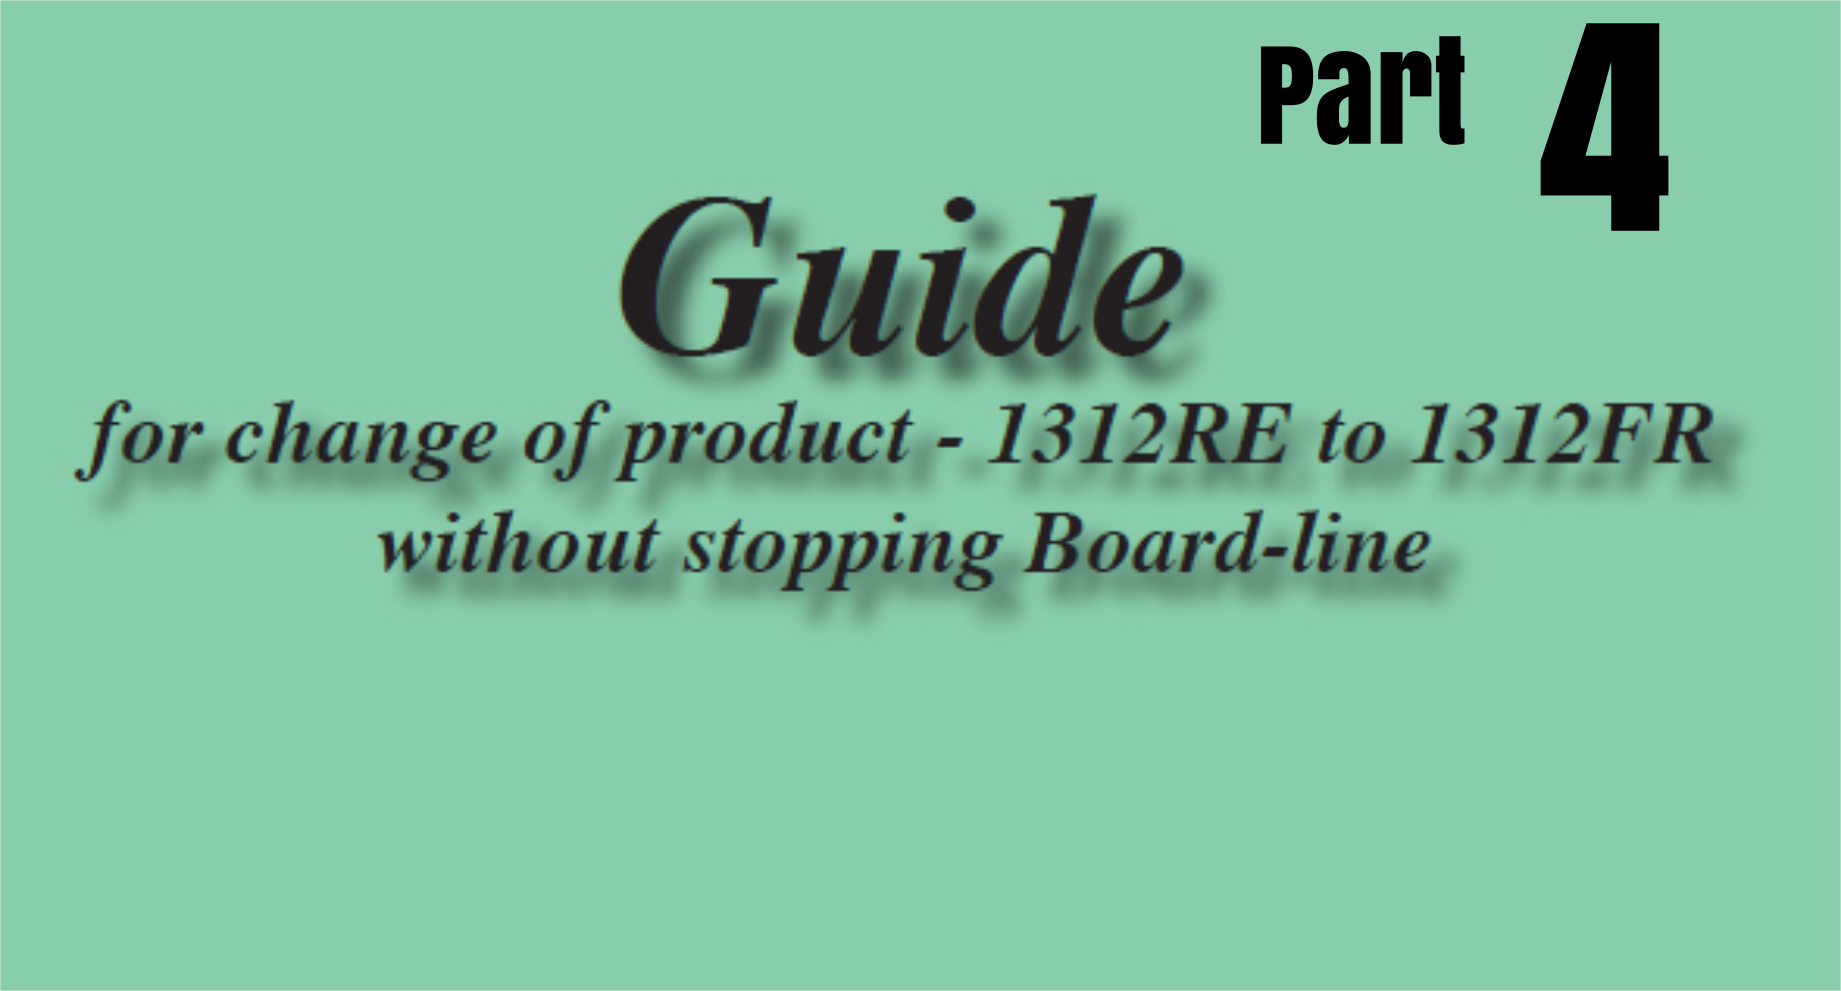 GUIDE FOR PRODUCT CHANGE WITHOUT STOPPING BOARD-LINE 1312RE T0 1312FR – MK 4